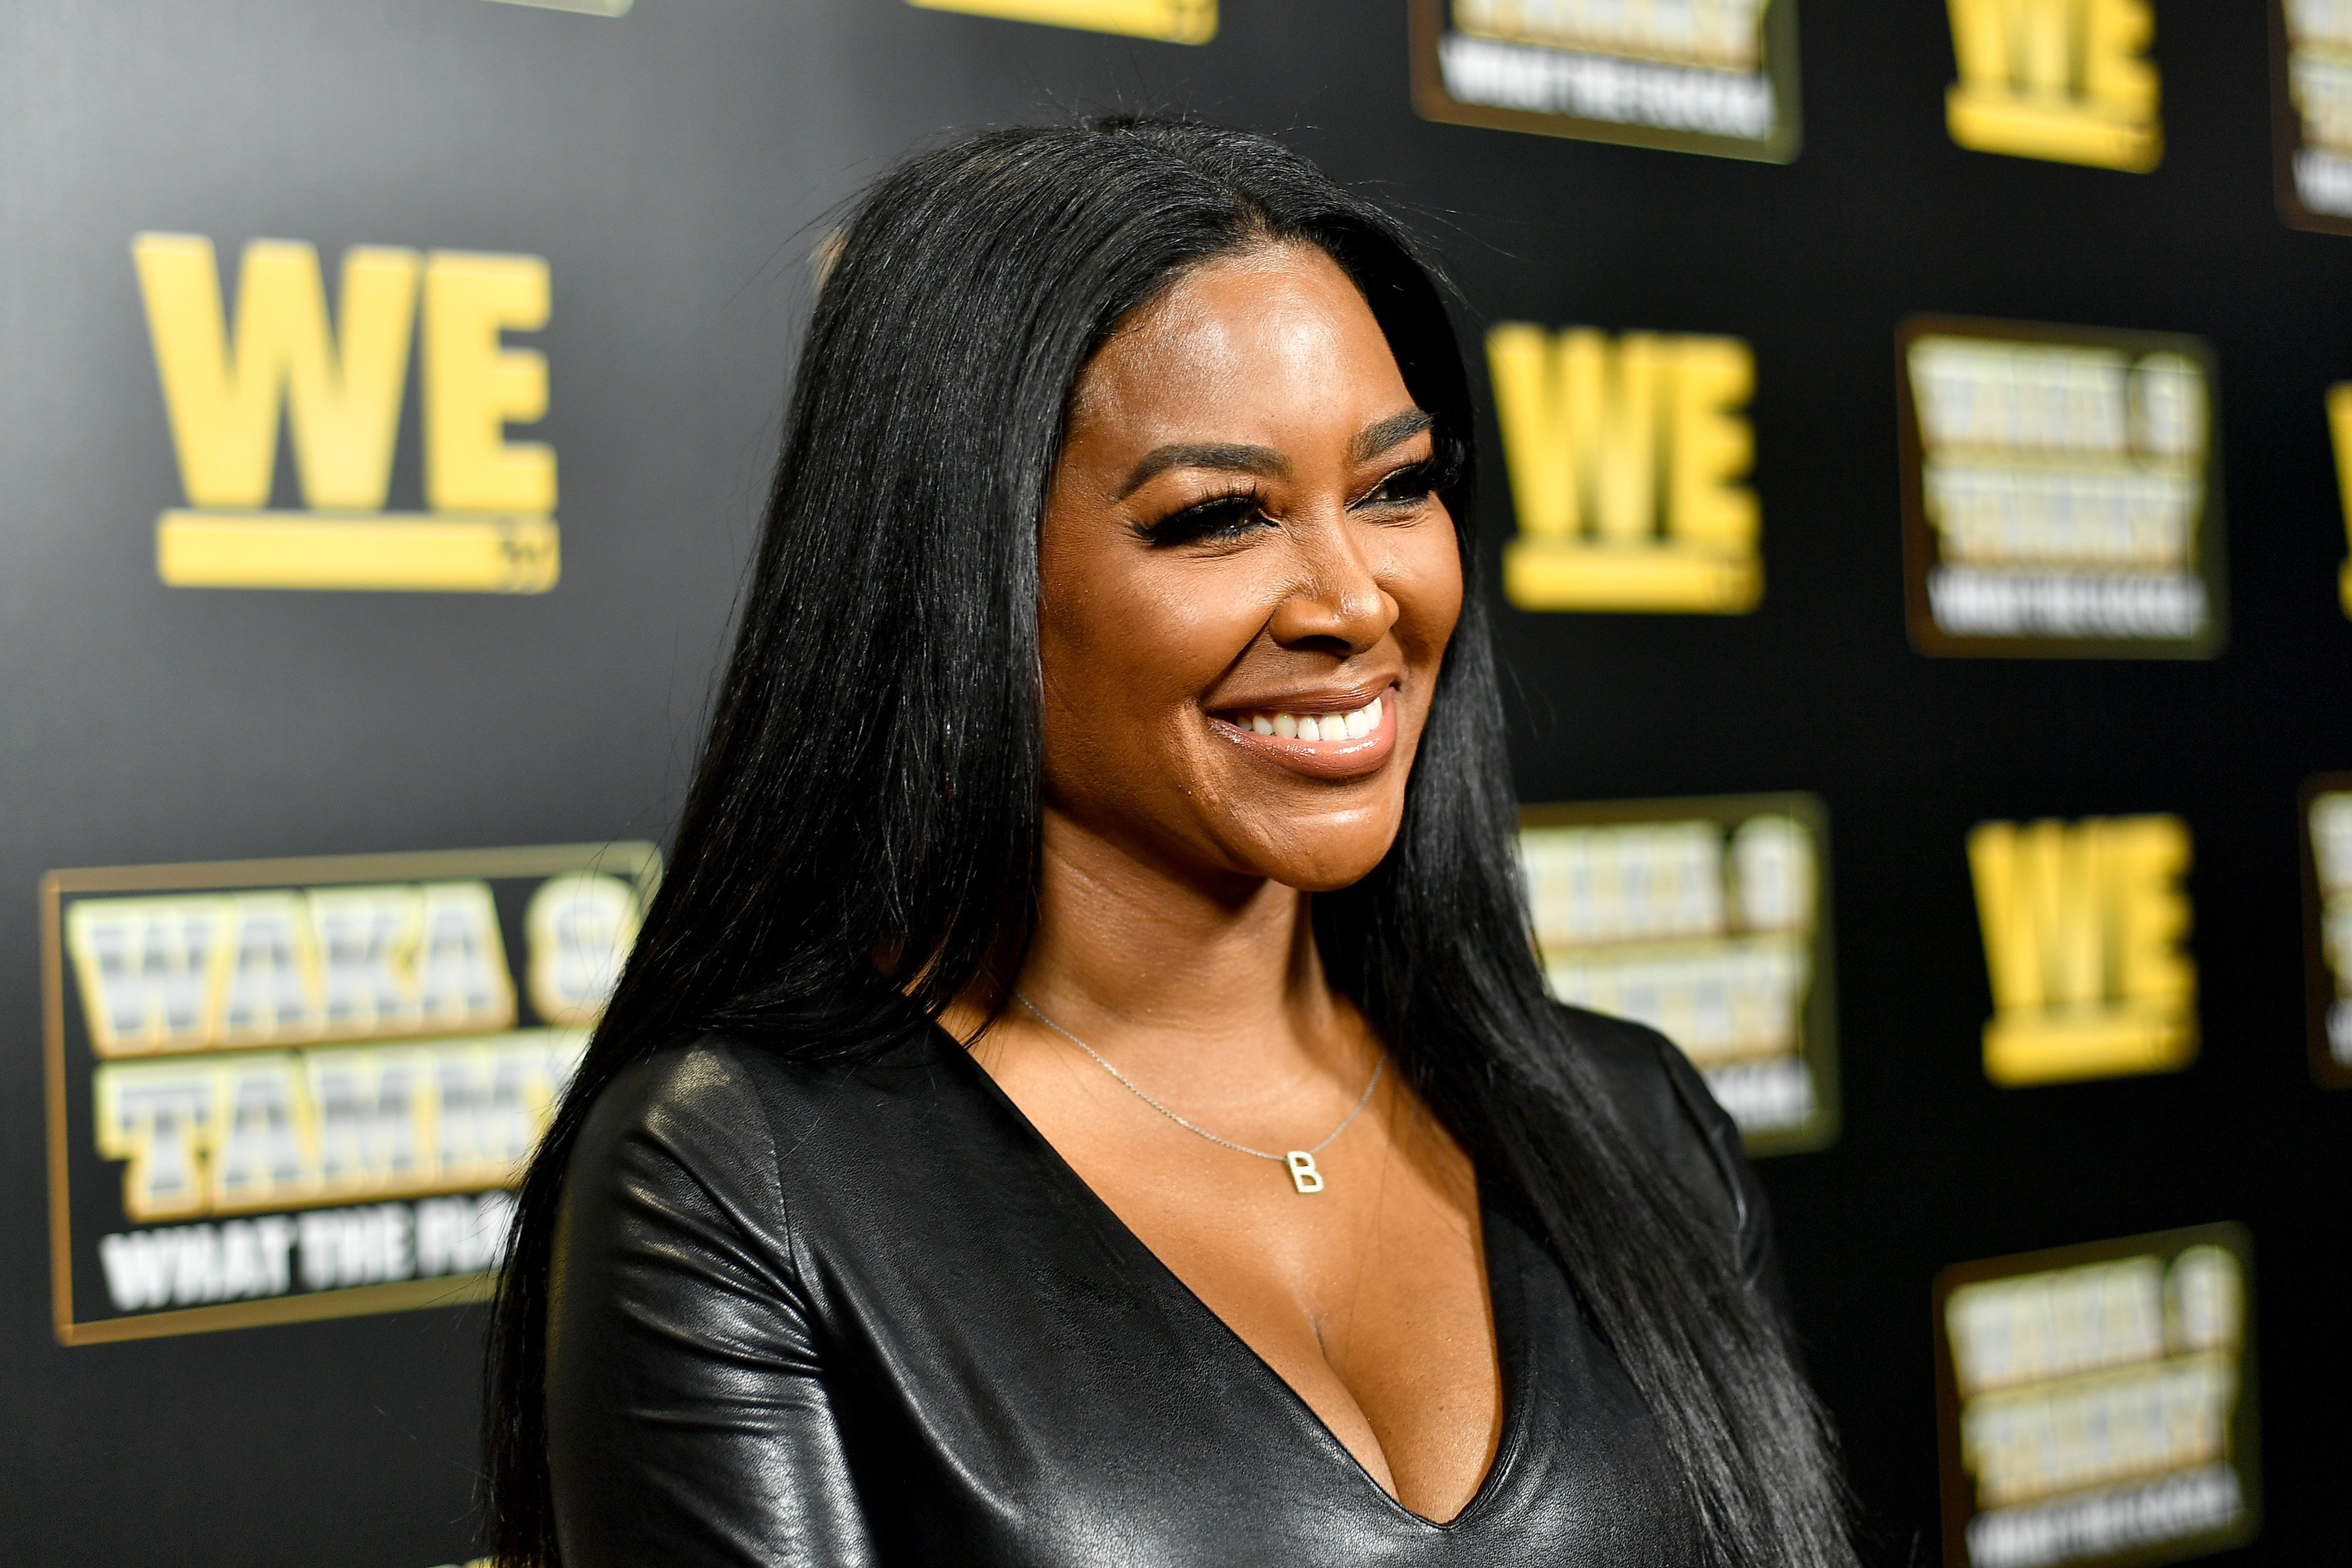 """Kenya Moore at the premiere of """"Waka & Tammy: What The Flocka"""" at Republic on March 10, 2020 in Atlanta, Georgia.